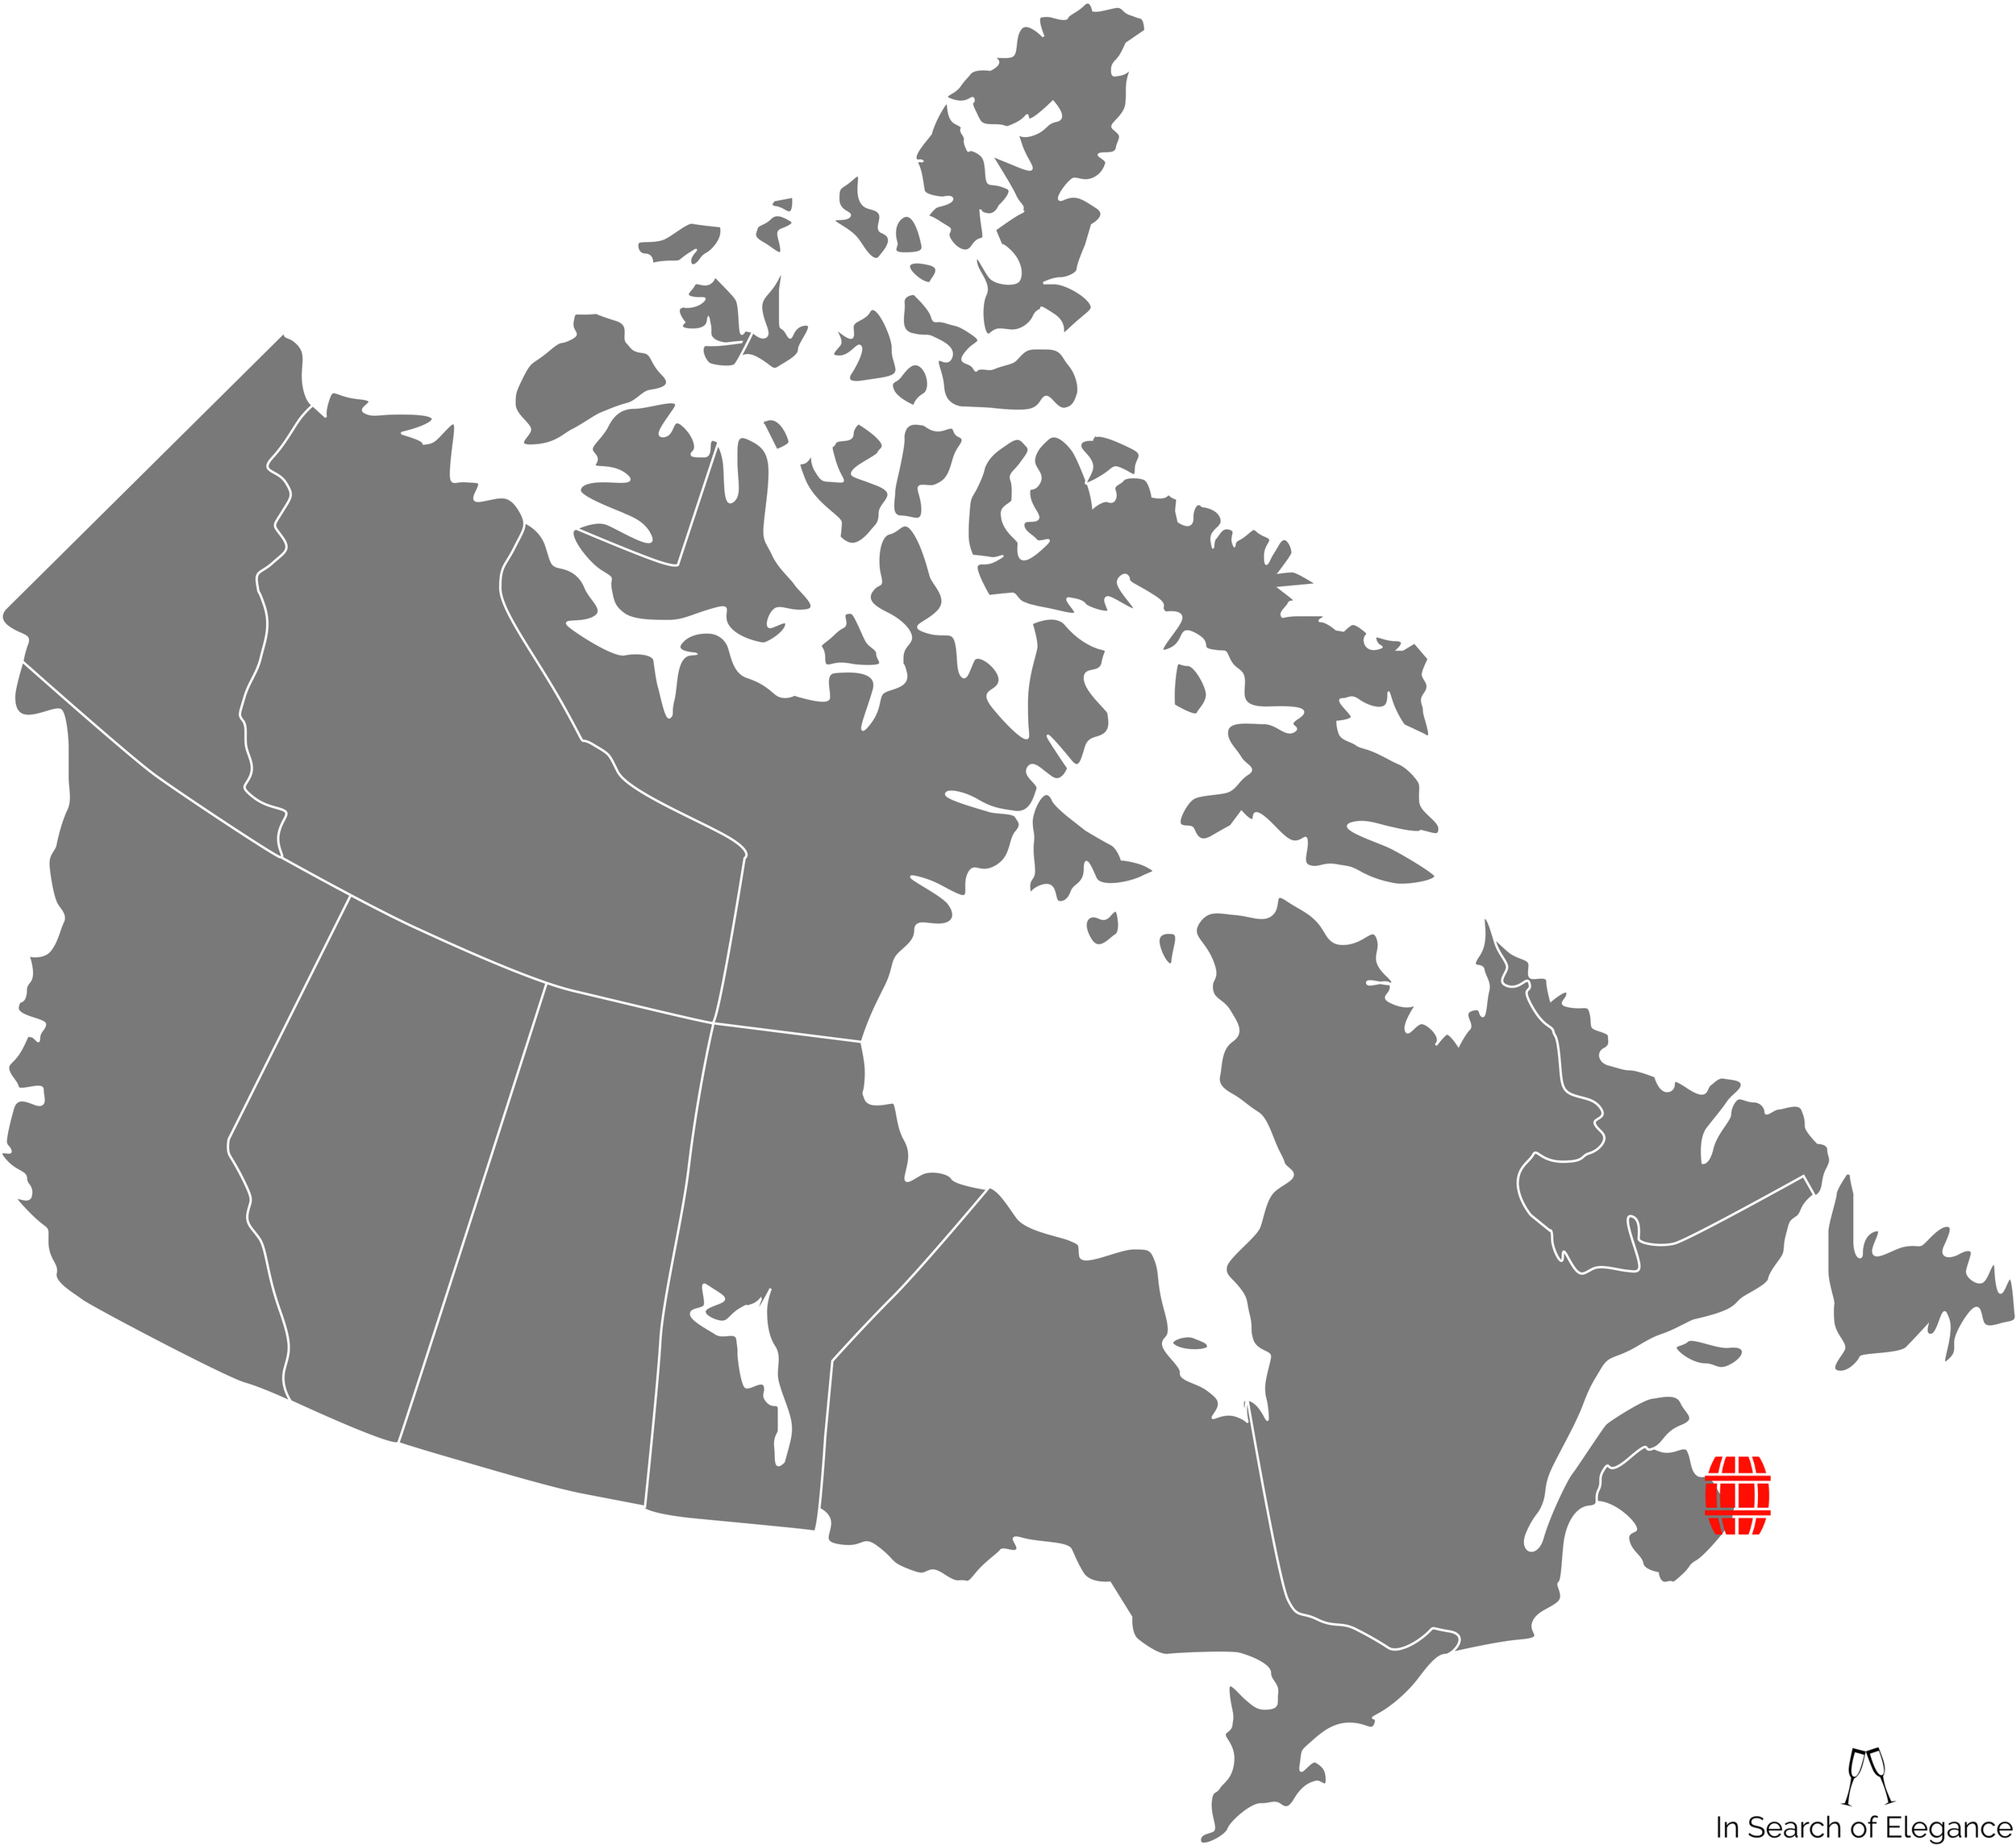 The map doesn't quite show Nova Scotia (or PEI, for that matter) properly. A search for Cape Breton might give you a better sense of the island than the crude positioning above....